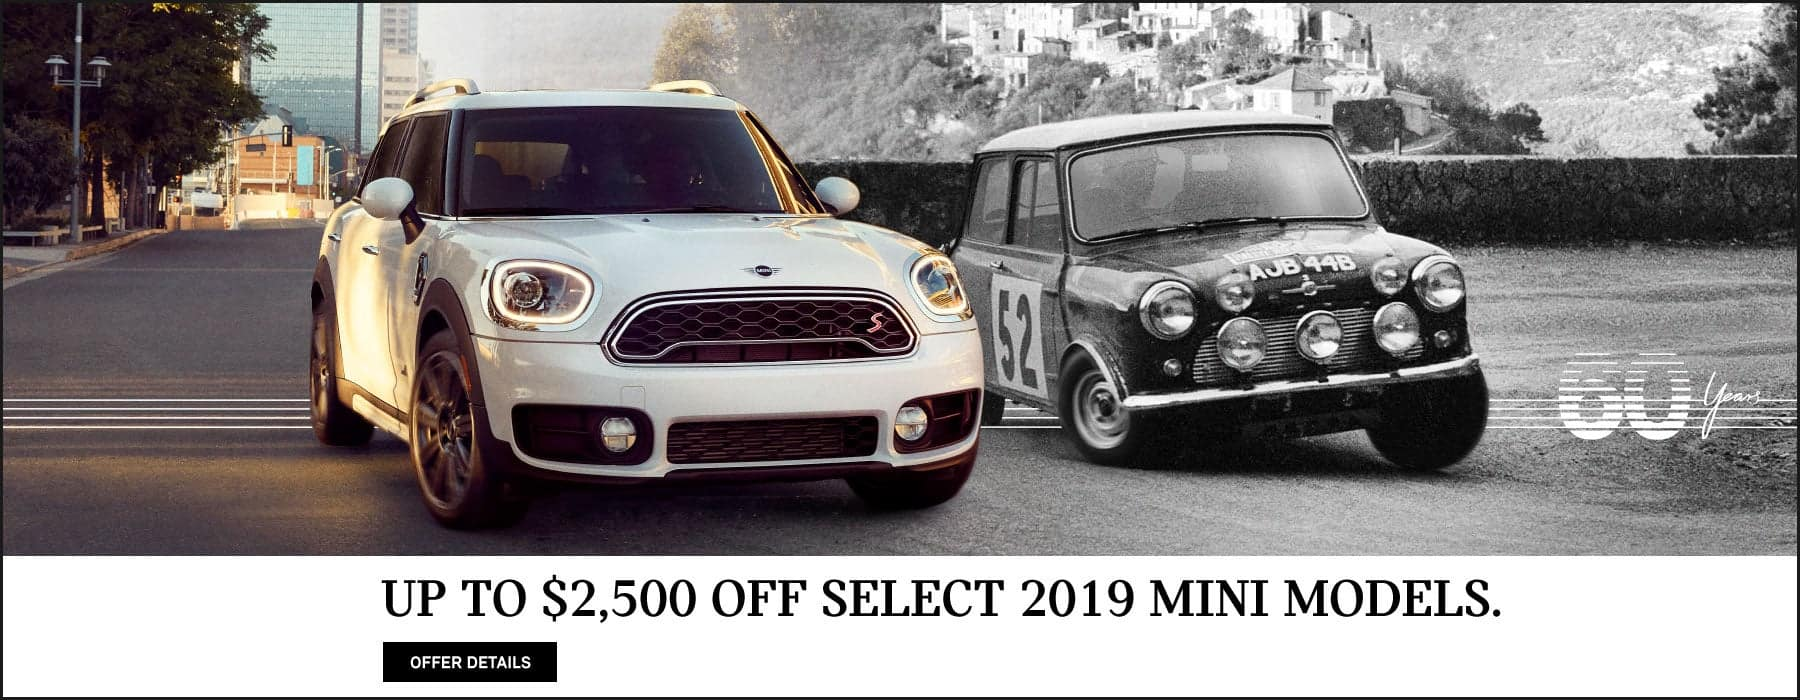 Up to $2,500 Off Select 2019 MINI Models.